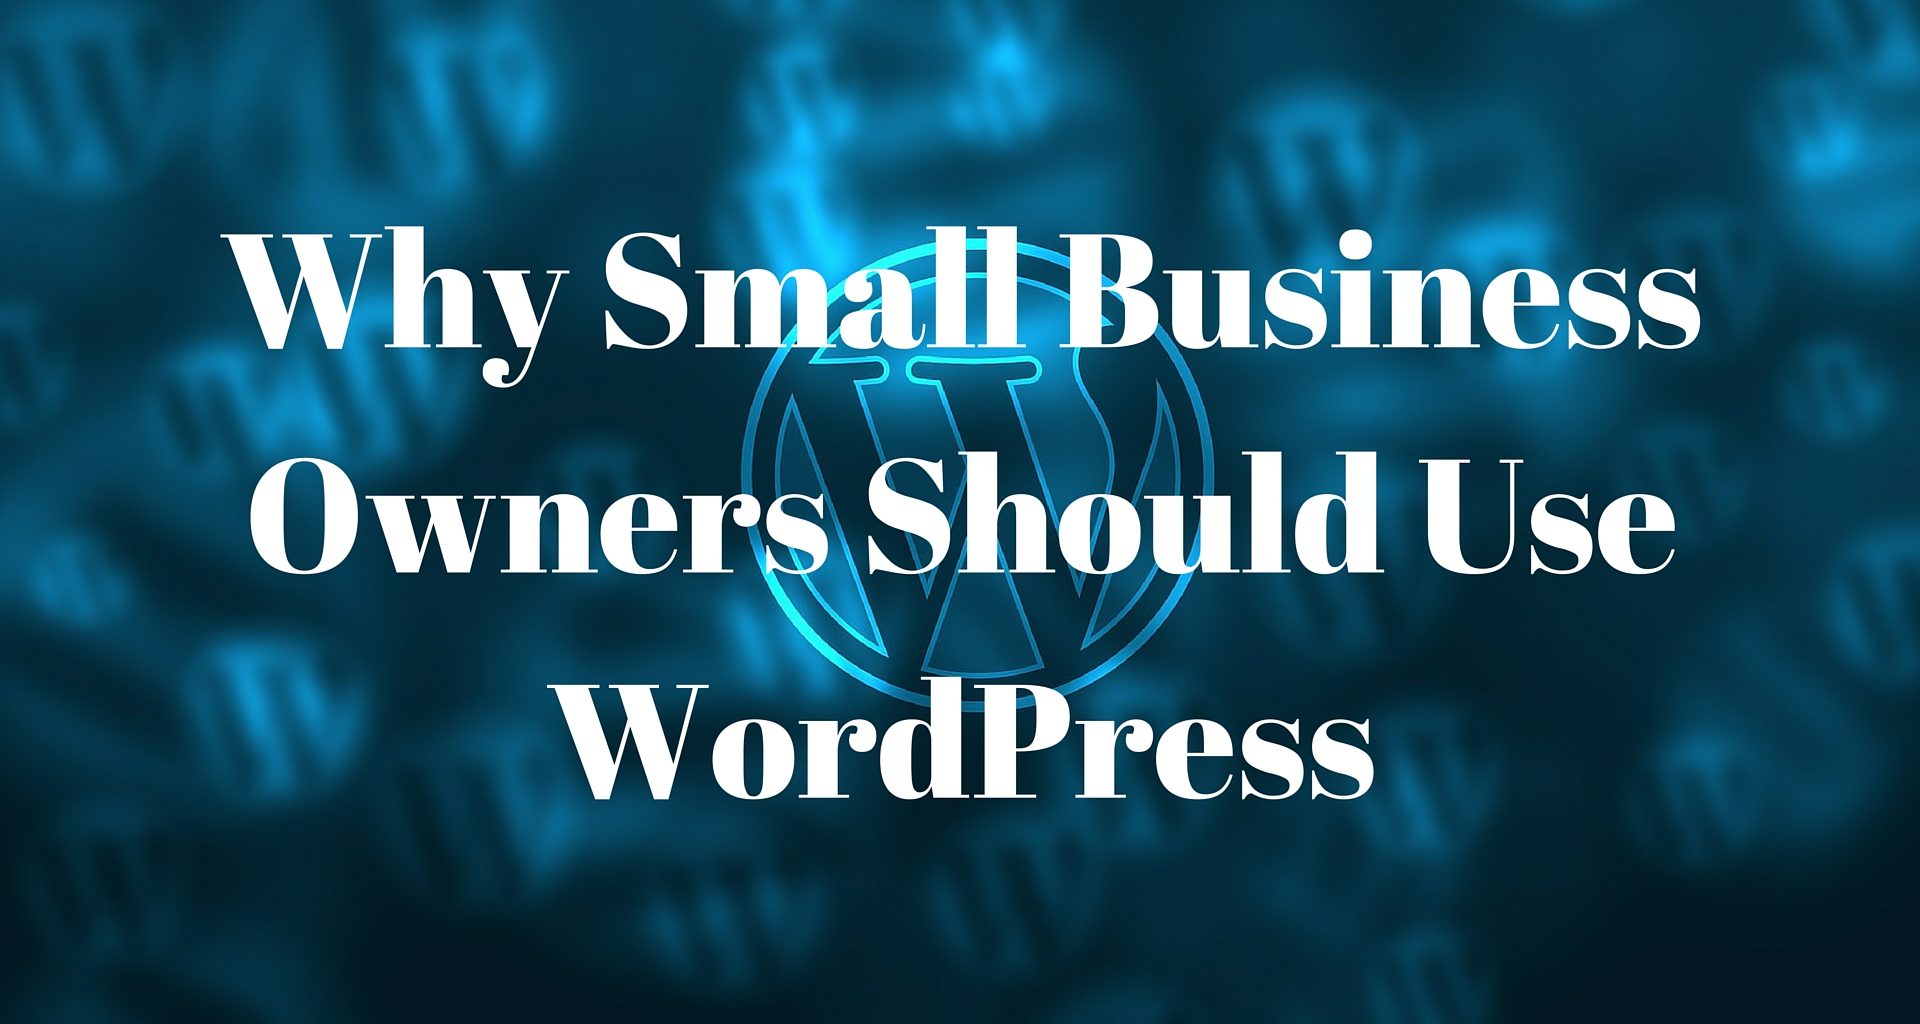 Why-Small-Business-Owners-Should-Use-WordPress